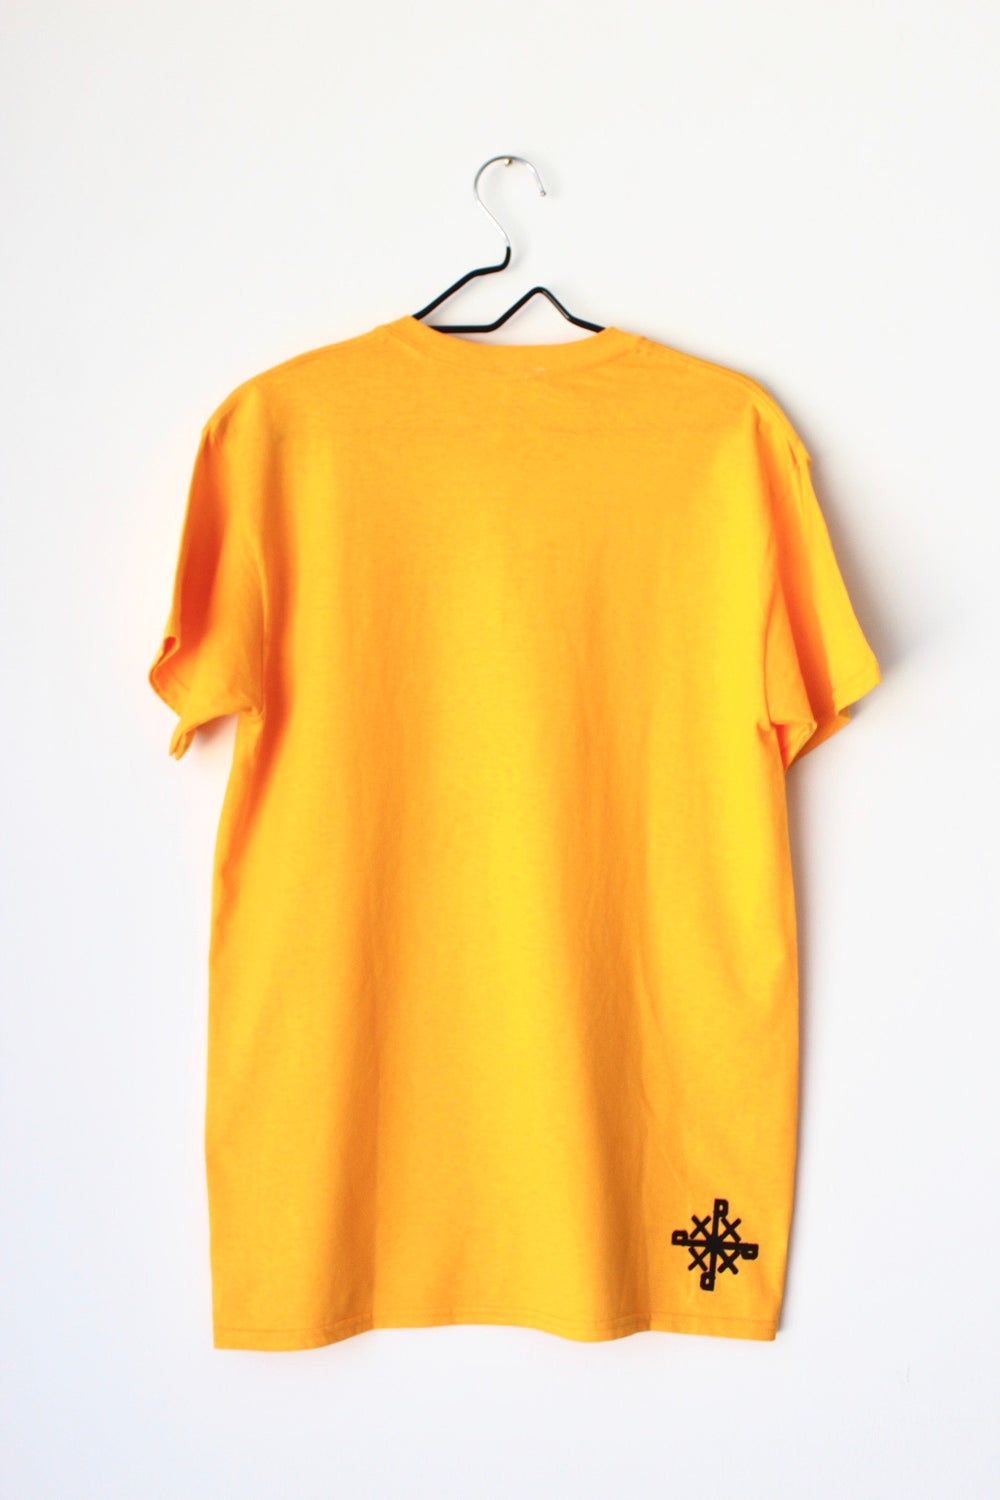 blame the system not the victim tee in yellow